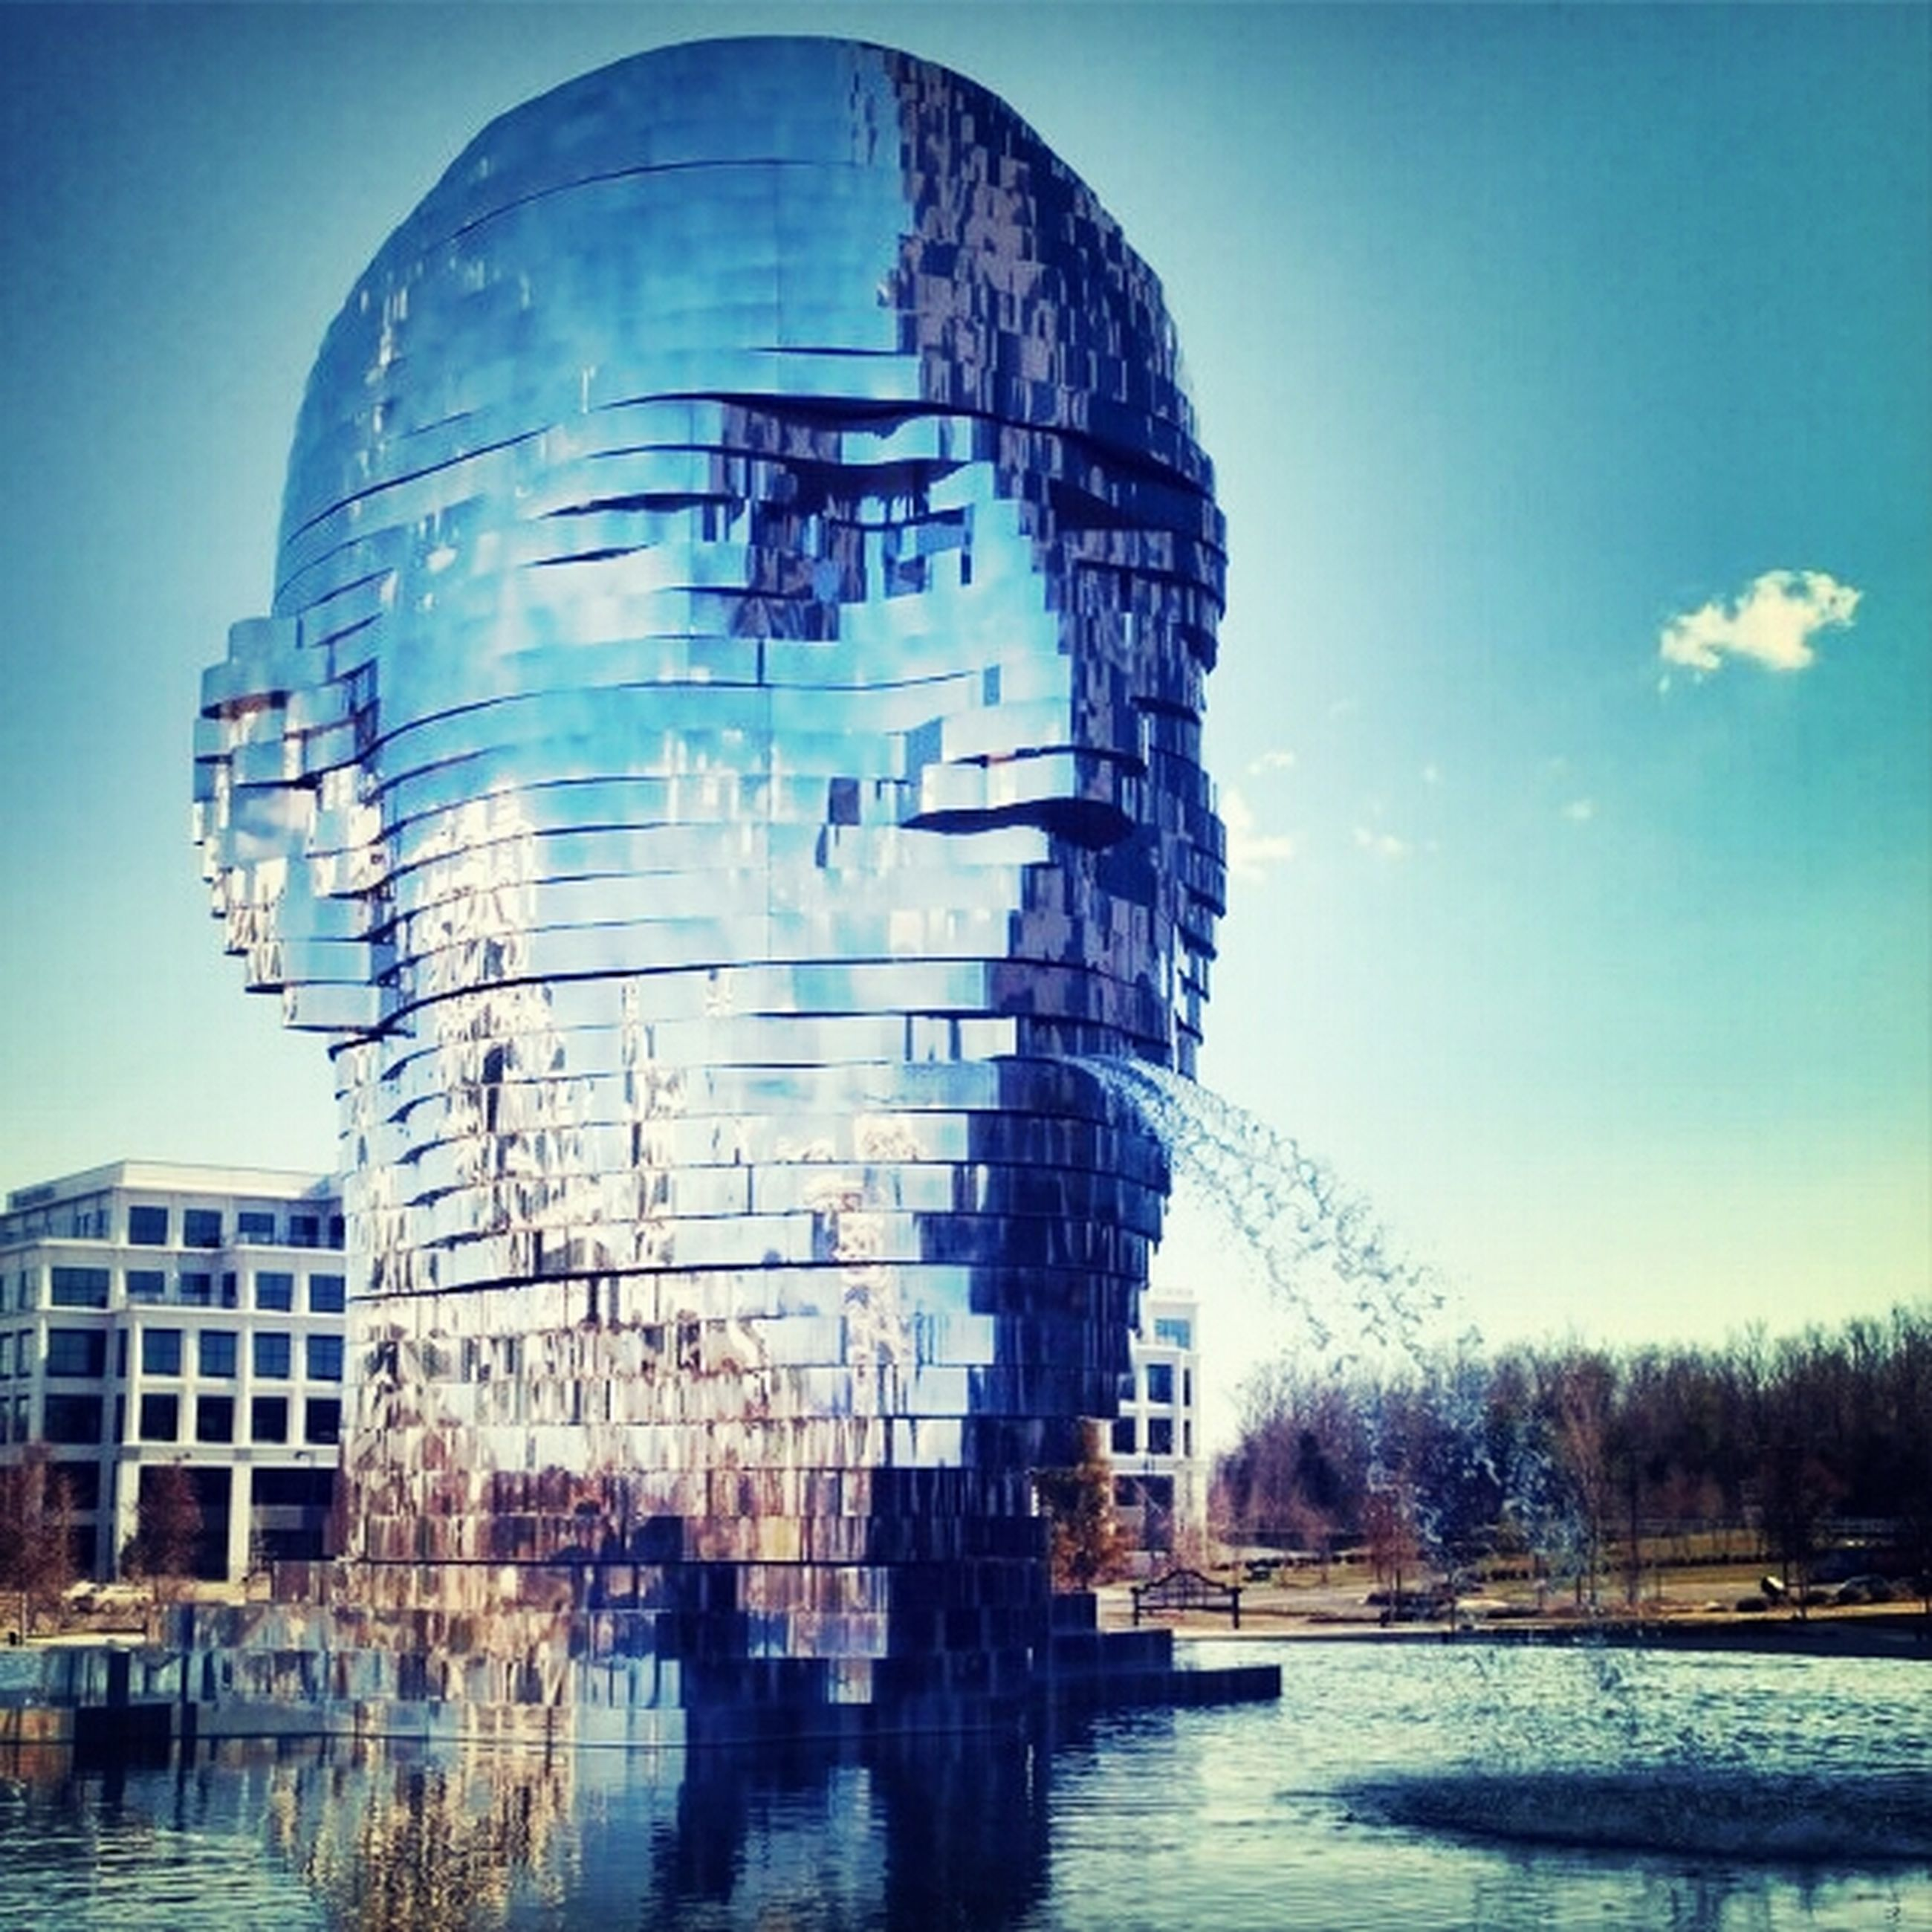 building exterior, architecture, built structure, water, reflection, waterfront, blue, sky, low angle view, city, building, river, day, outdoors, no people, clear sky, lake, sunlight, residential building, tower